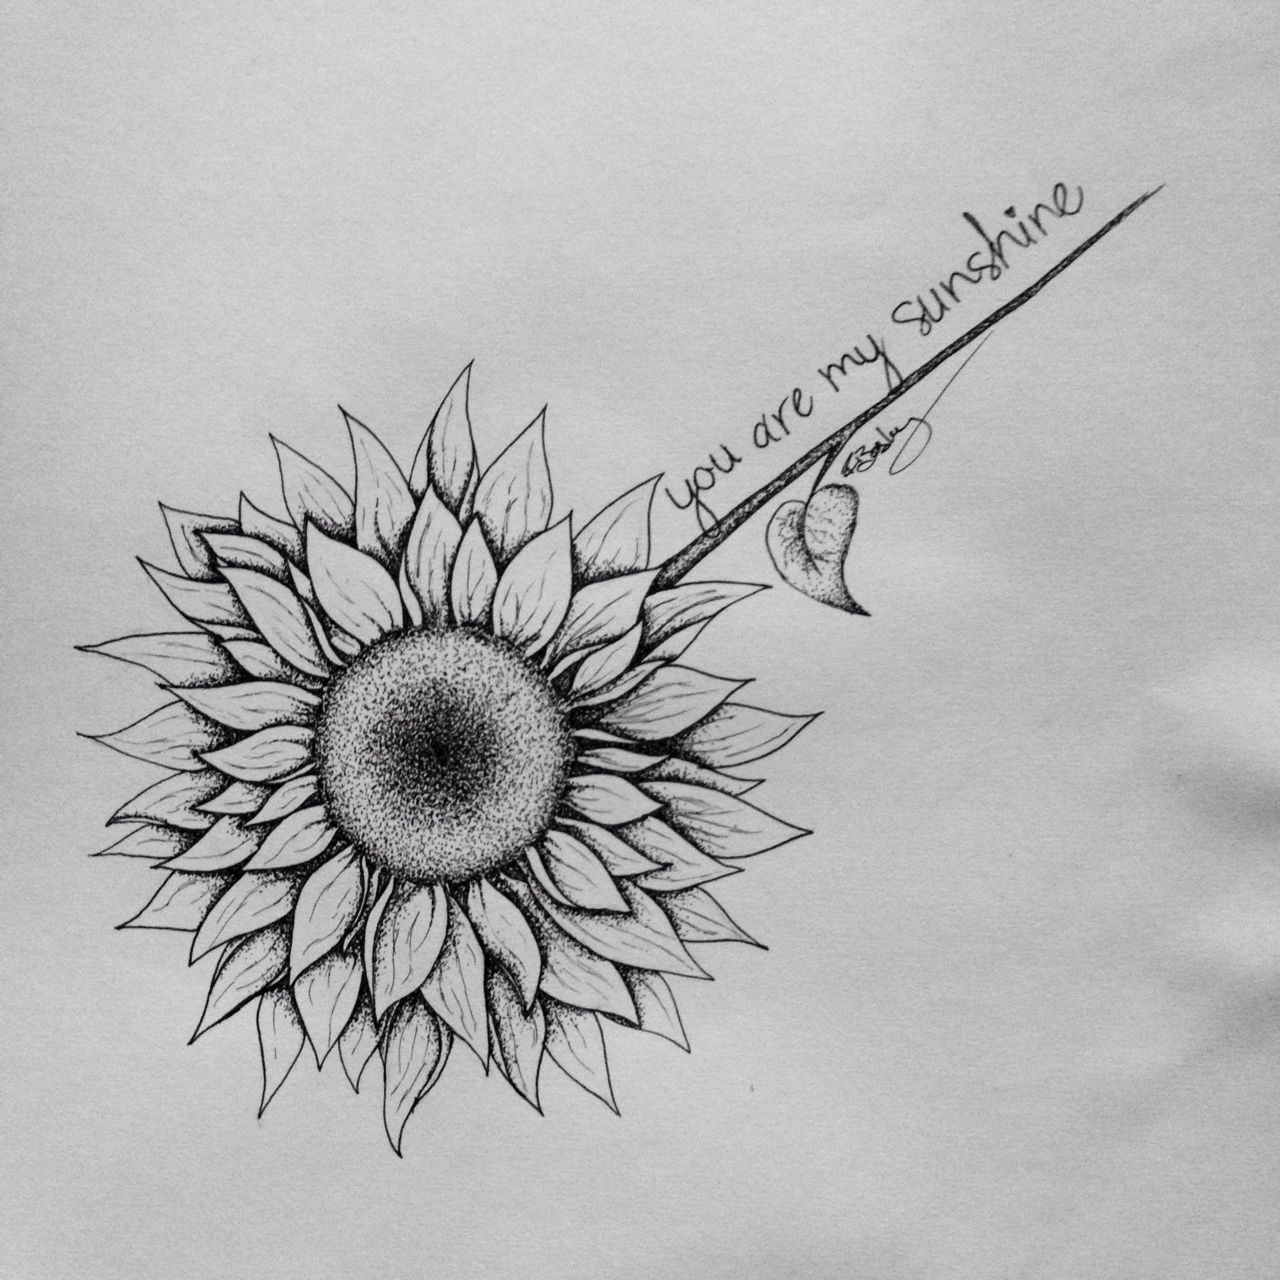 sunflower tattoo drawing for a friend drawing pinterest sunflowers tattoo and tatting. Black Bedroom Furniture Sets. Home Design Ideas